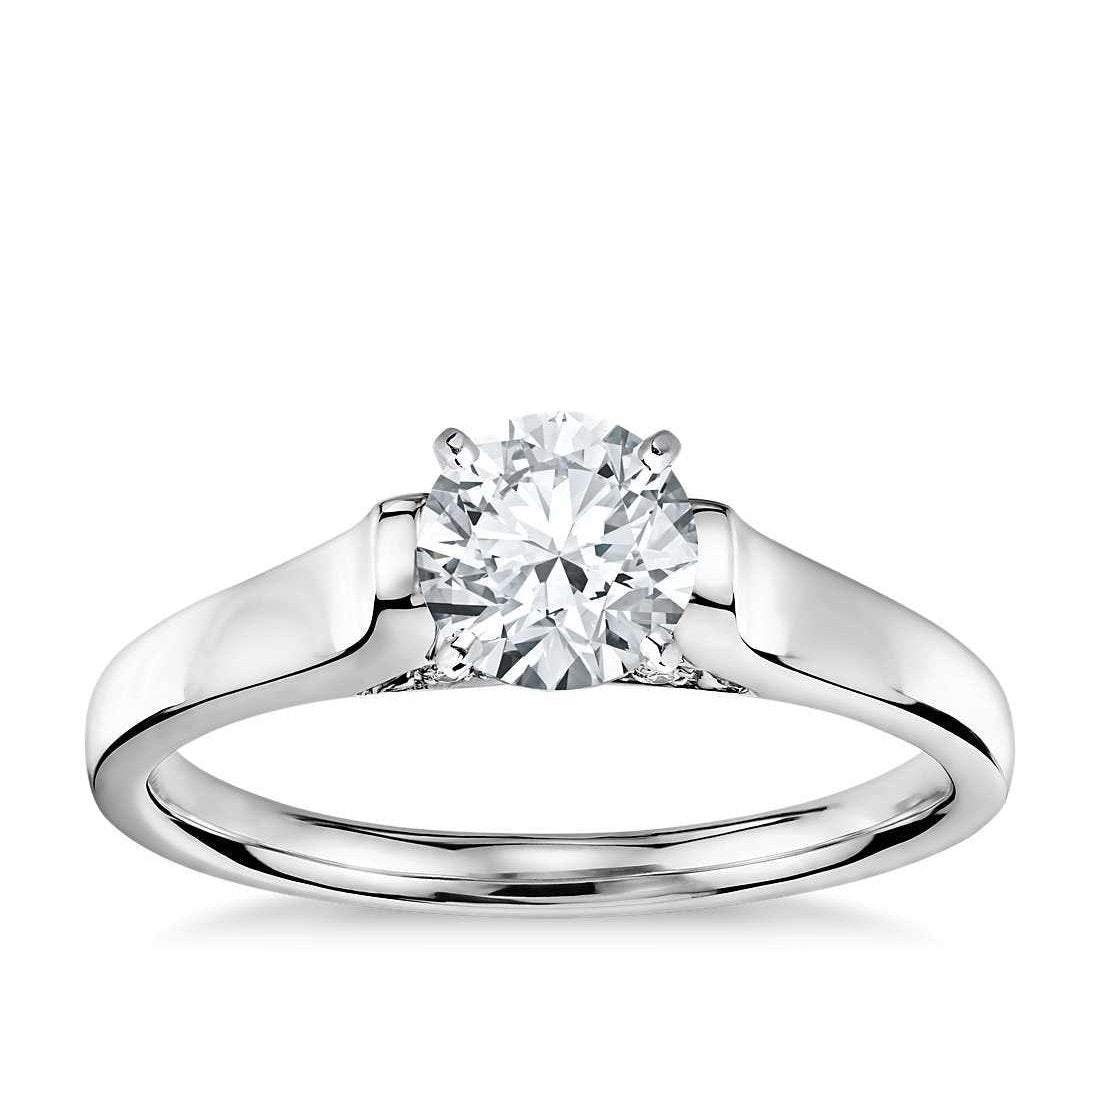 1 Carat Round Solitaire Diamond Engagement Ring Gold Jewelry Solitaire Ring